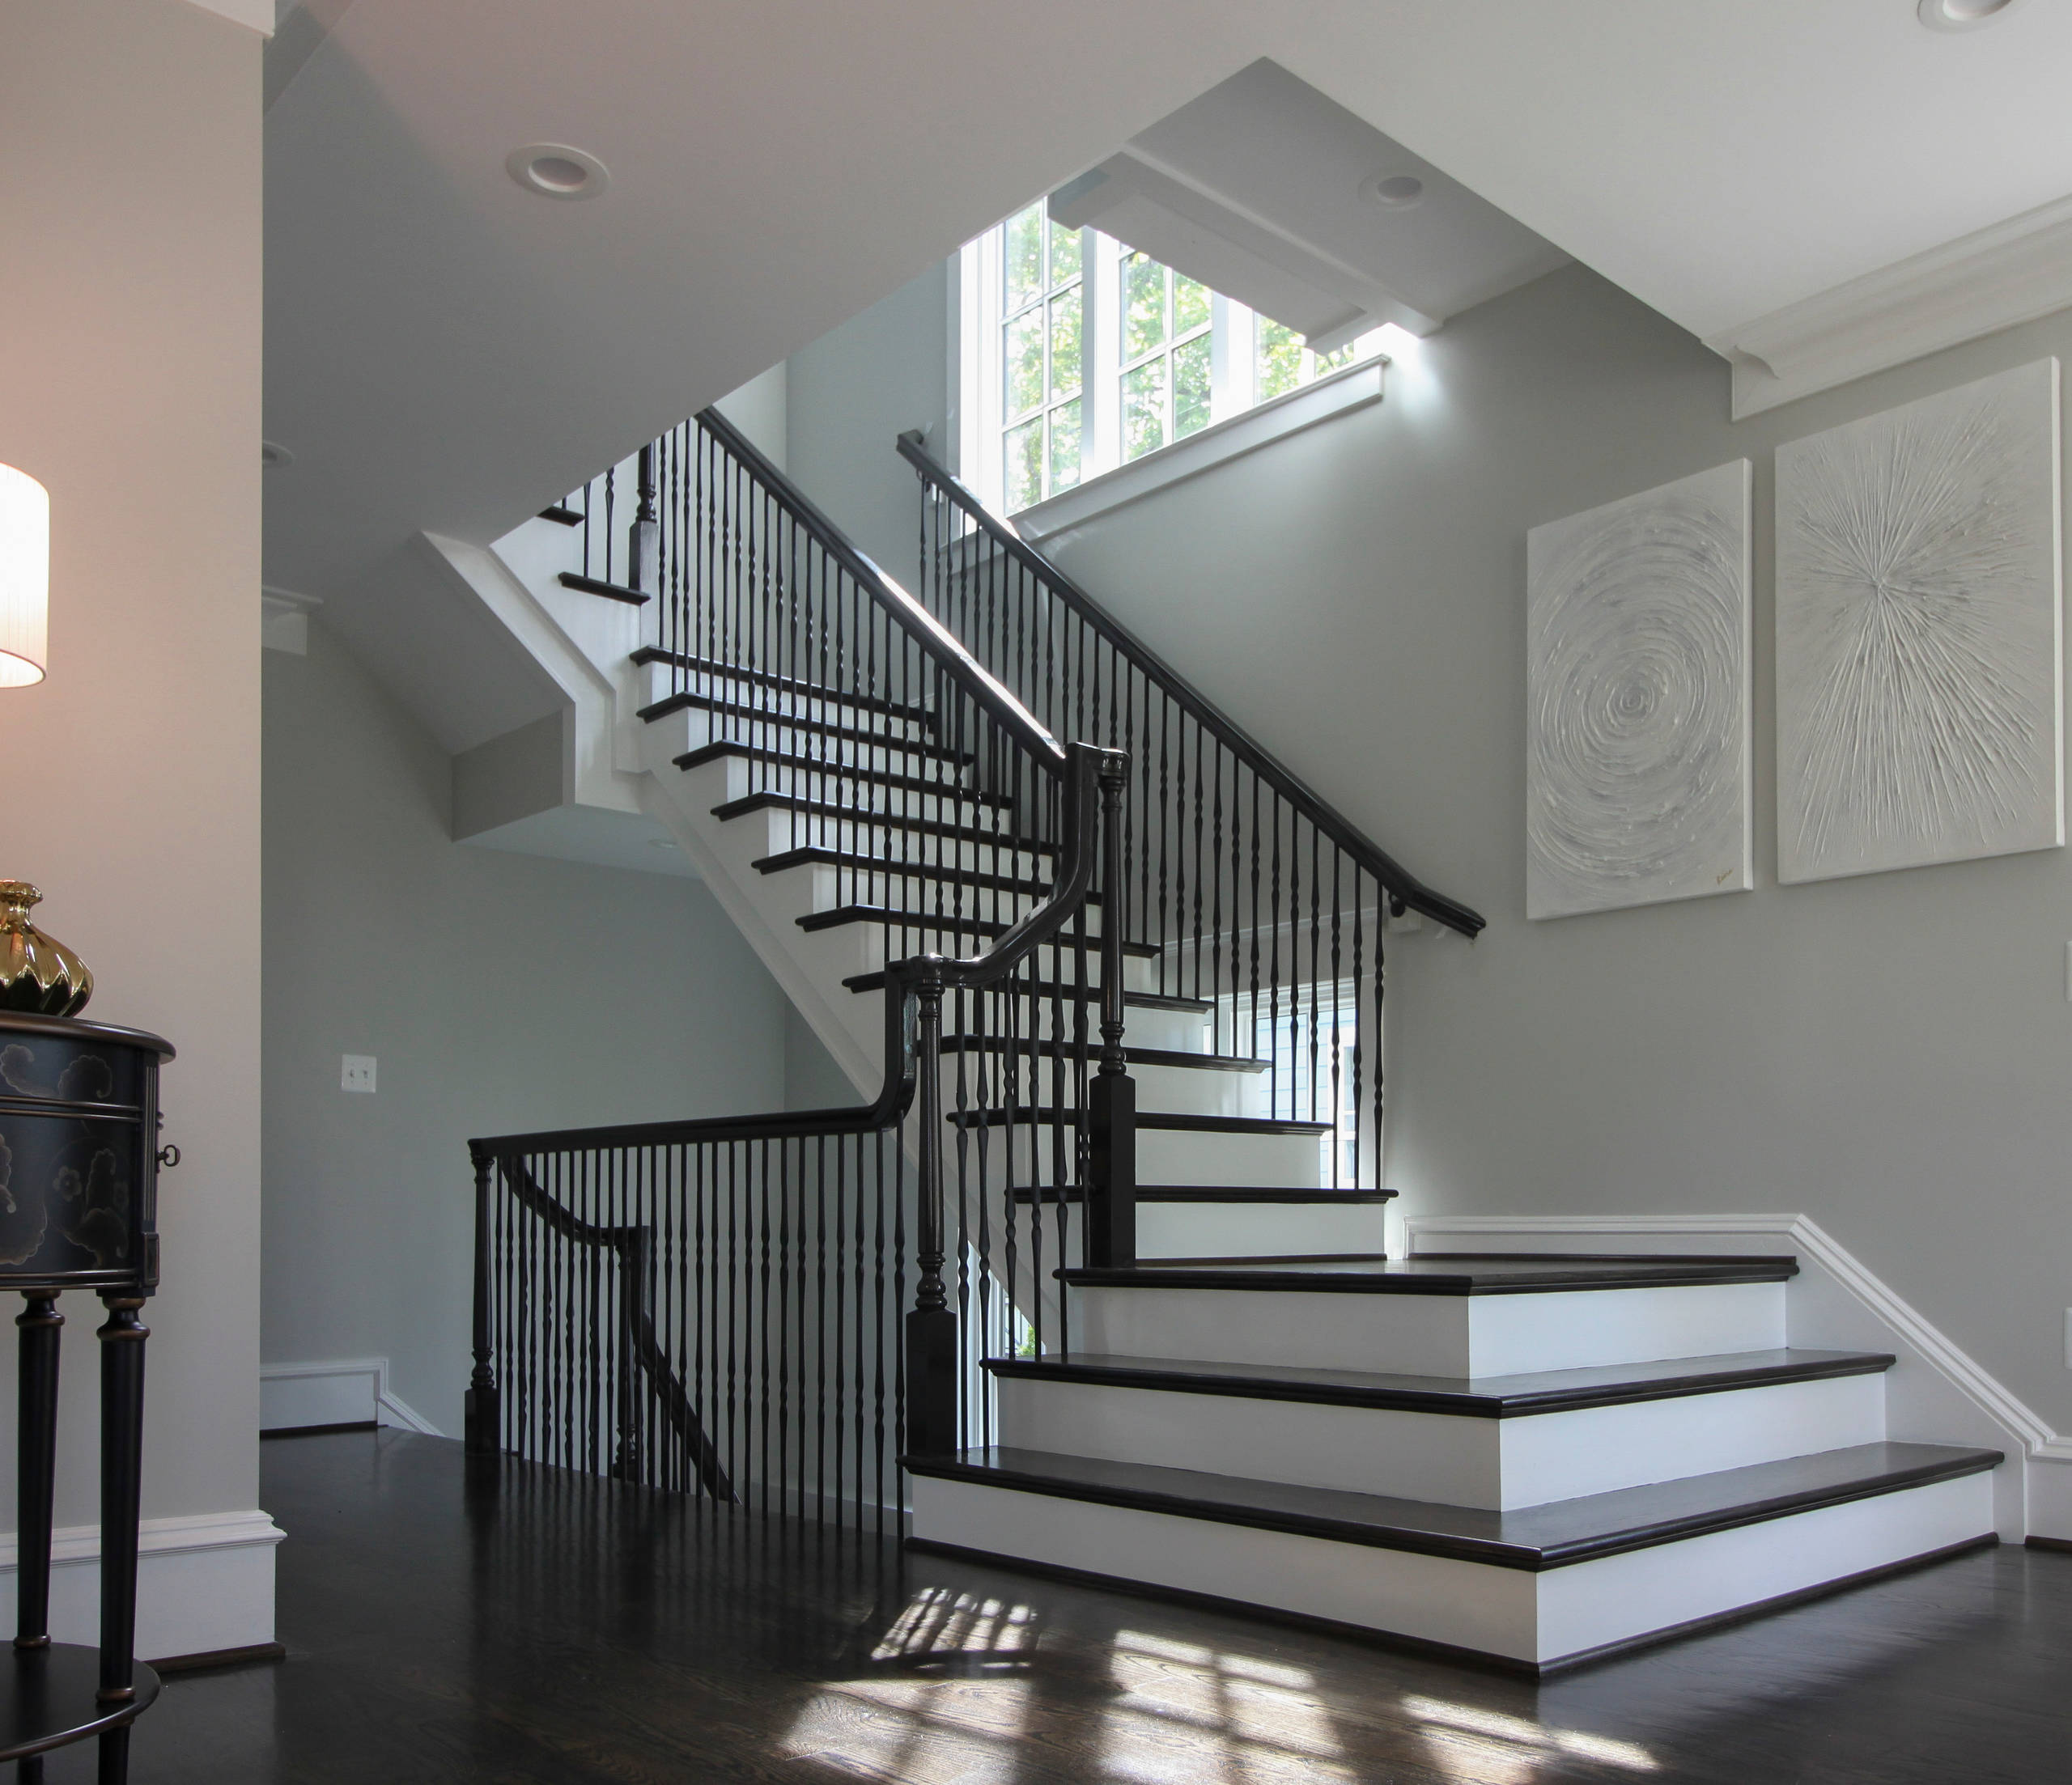 41_Dramatic Semi-Floating Staircase for Top D.C. Area Builder, Arlington VA 2220